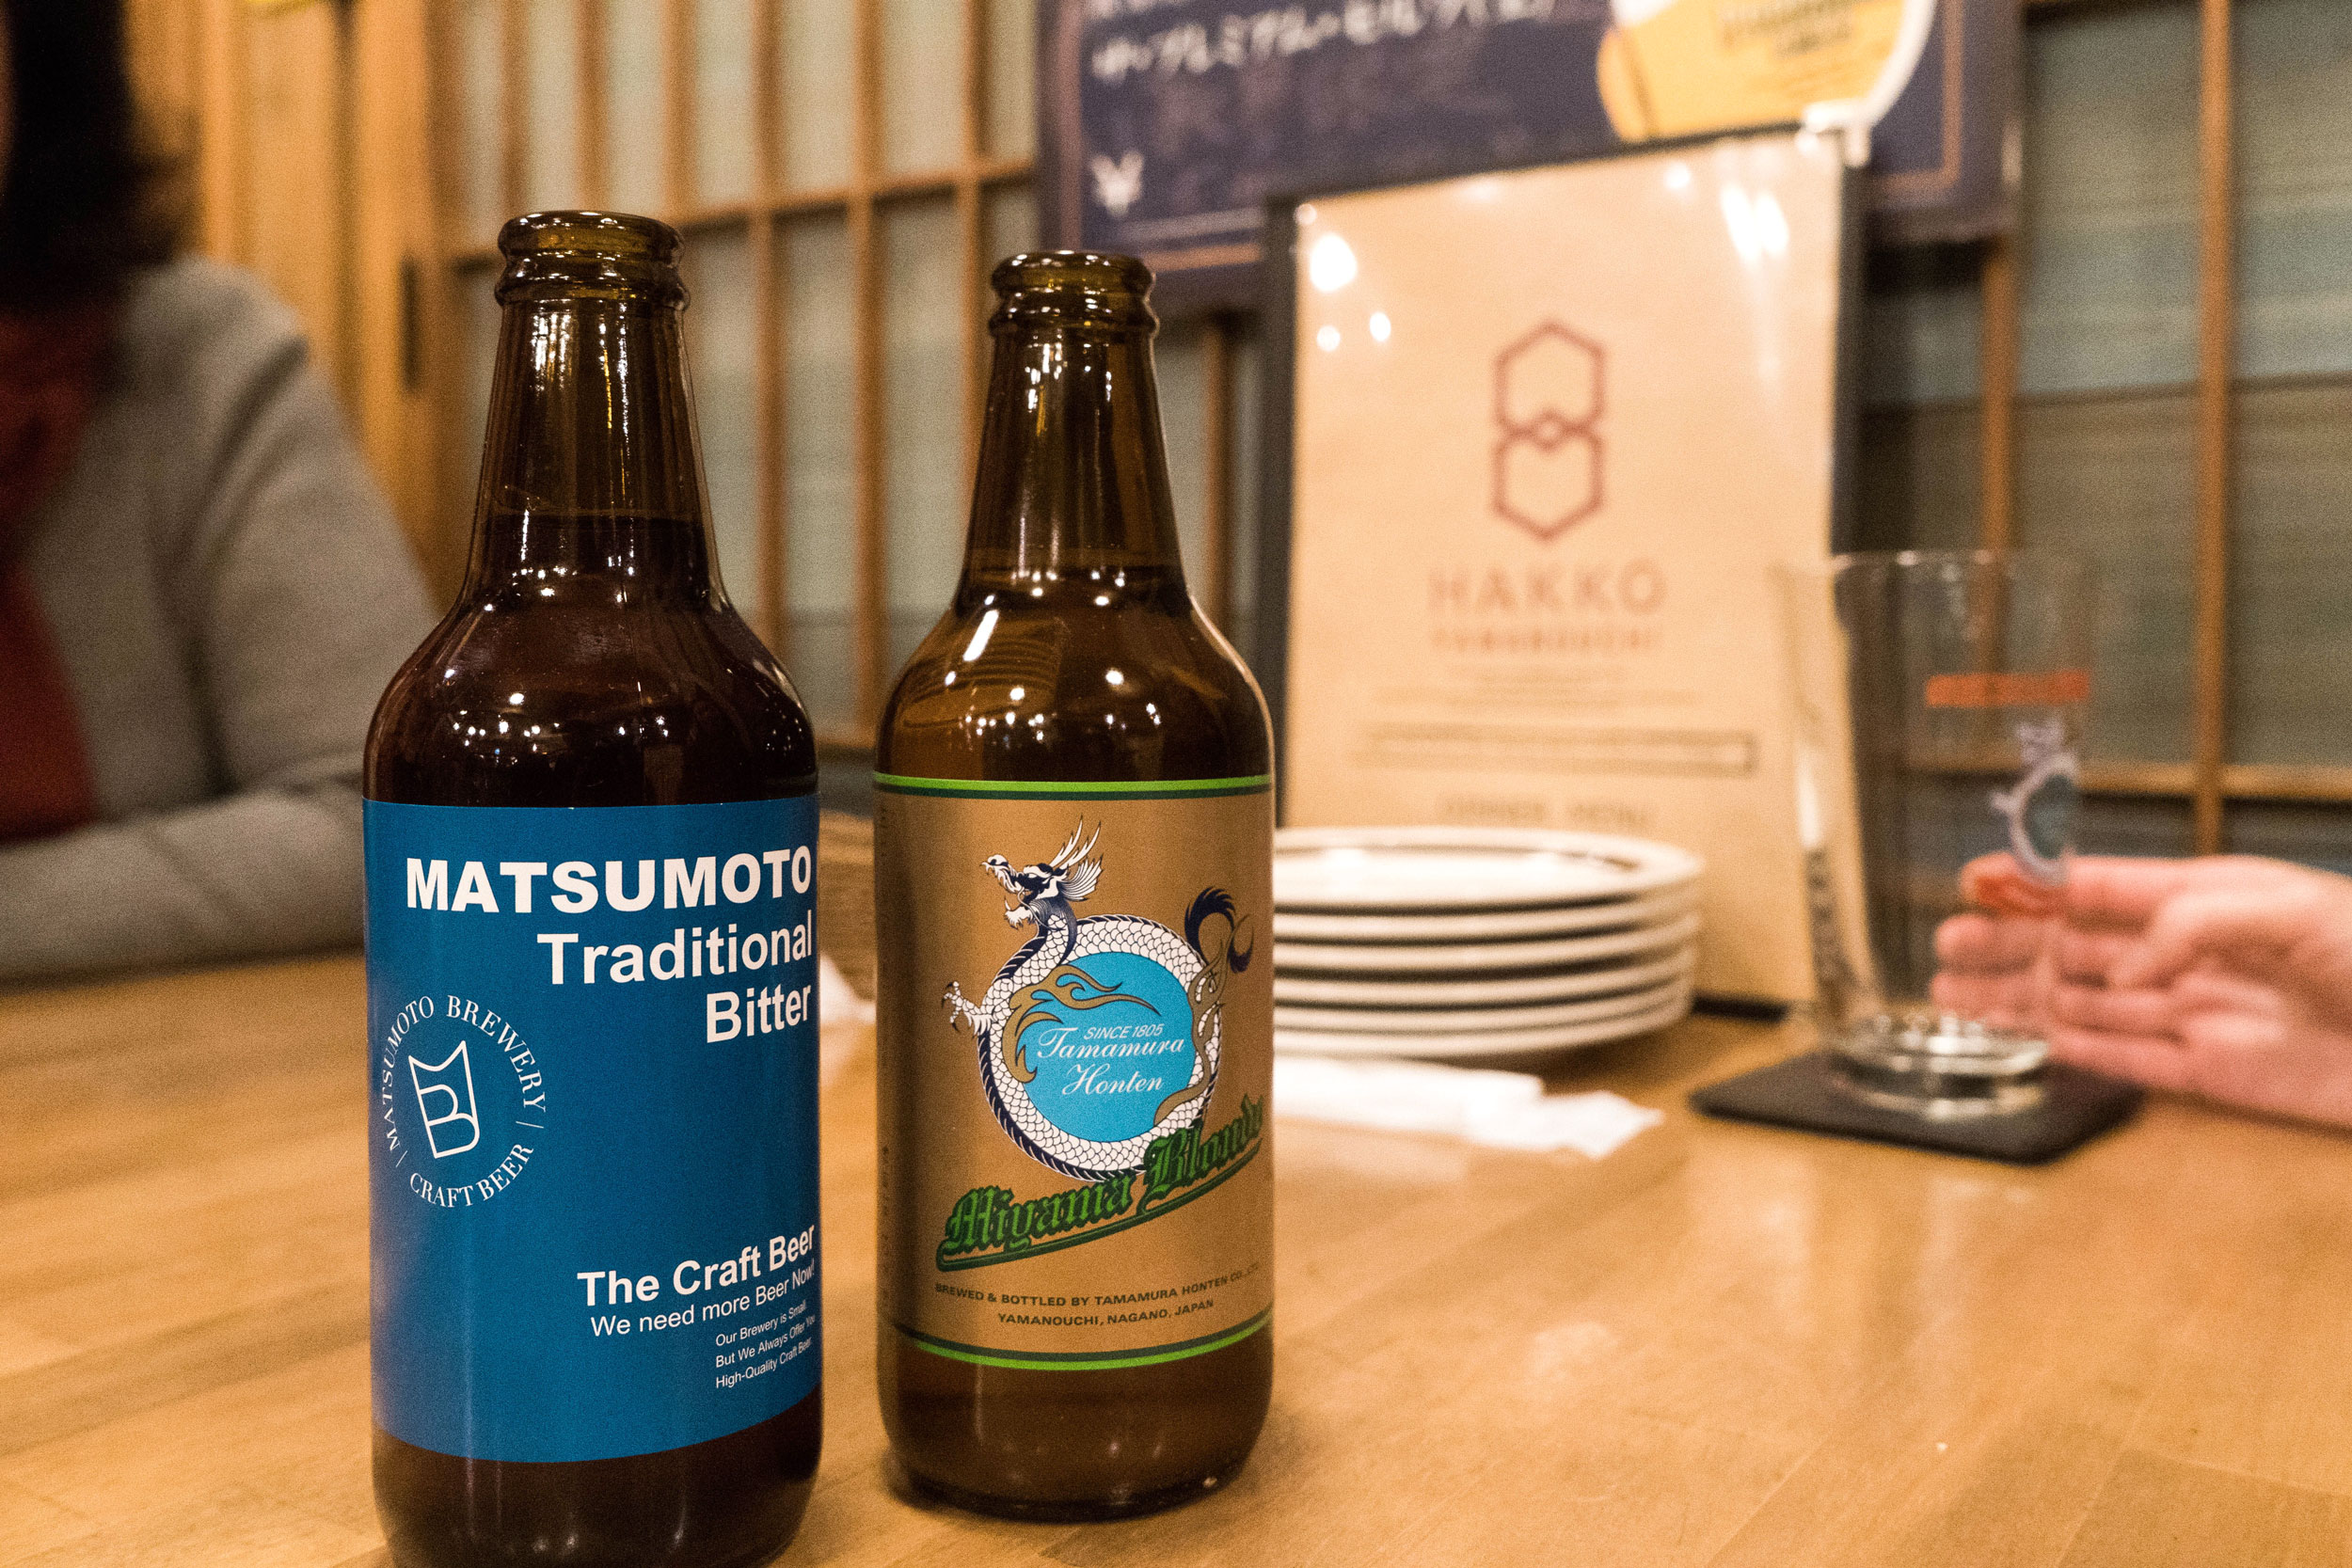 Nagano prefecture craft beer at Hakko